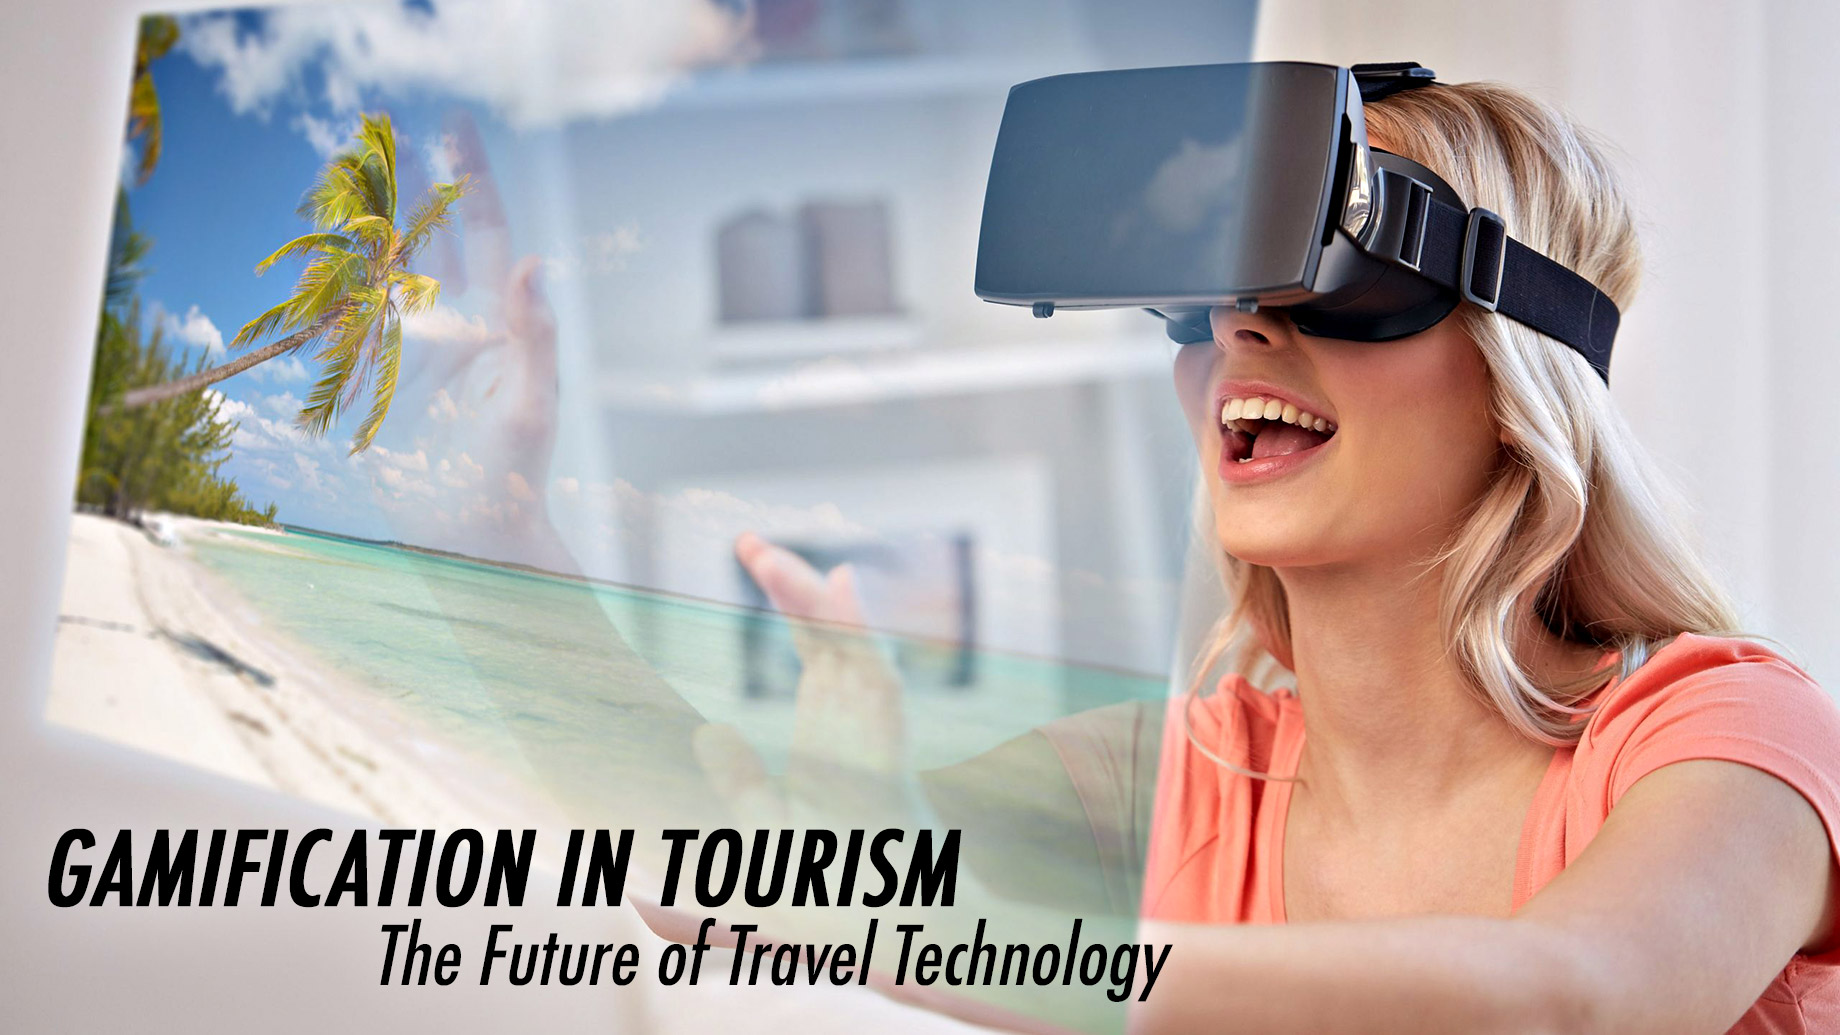 Gamification in Tourism - The Future of Travel Technology